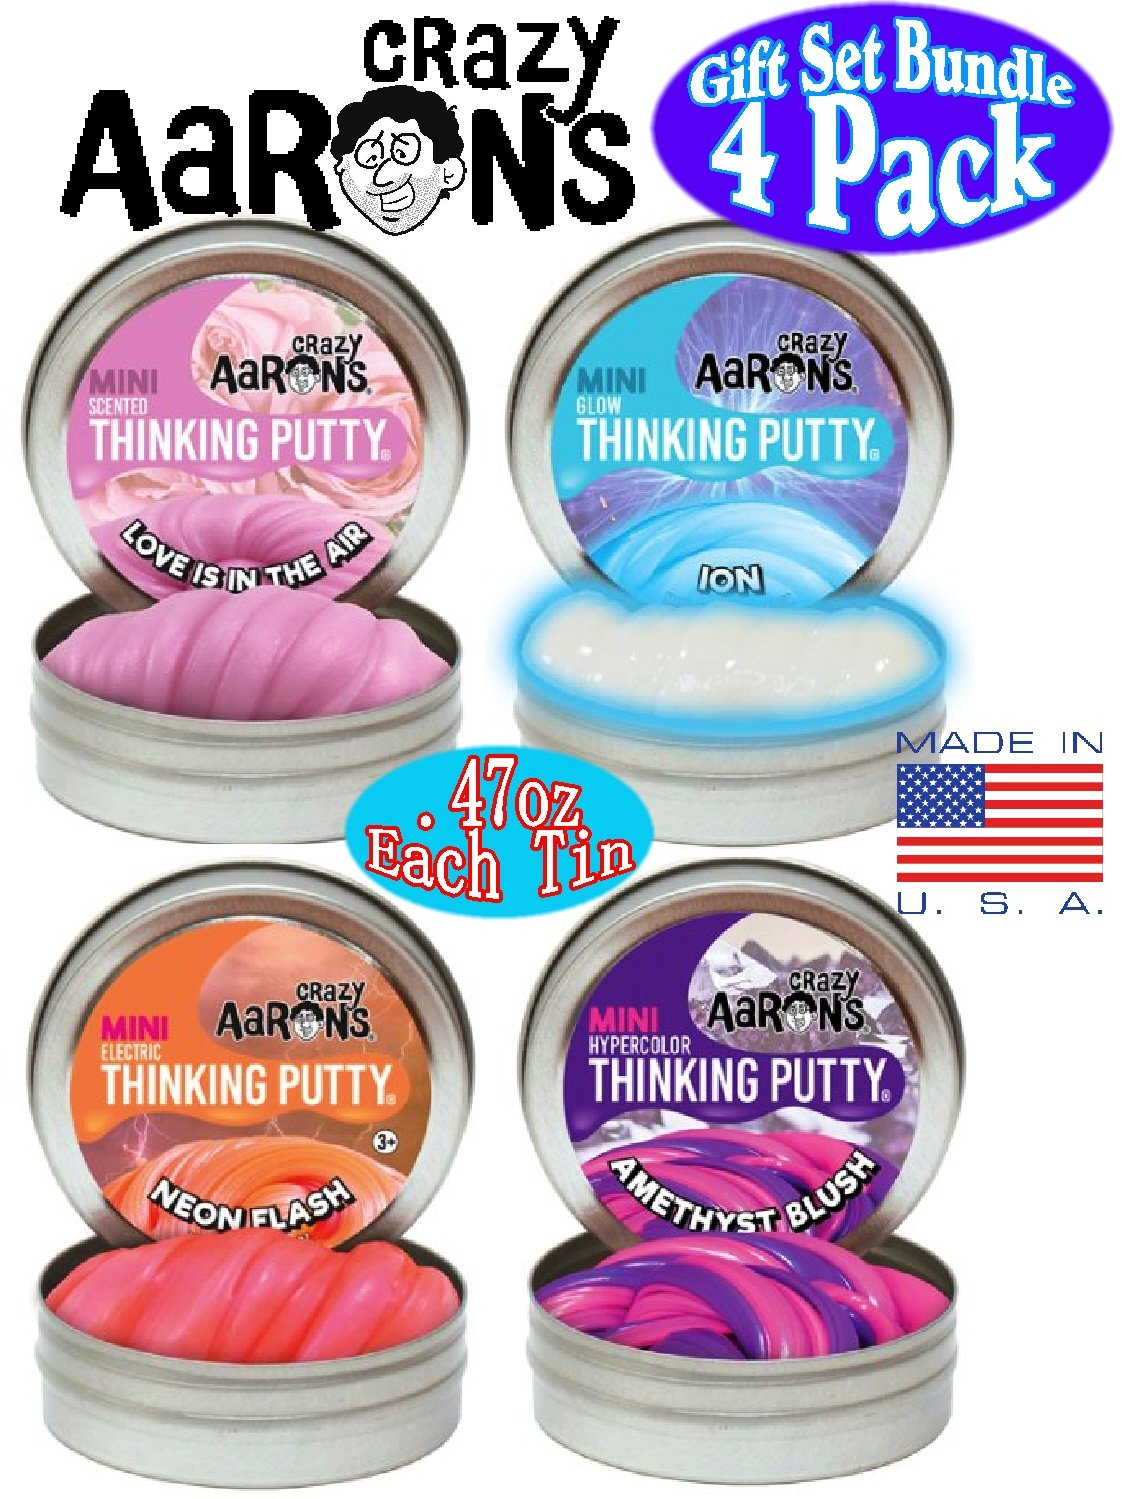 Crazy Aaron's Thinking Putty Mini Tins (.47oz each) Neon Flash, Love is in the Air, Amethyst Blush & Ion Gift Set Bundle - 4 Pack by Crazy Aaron's